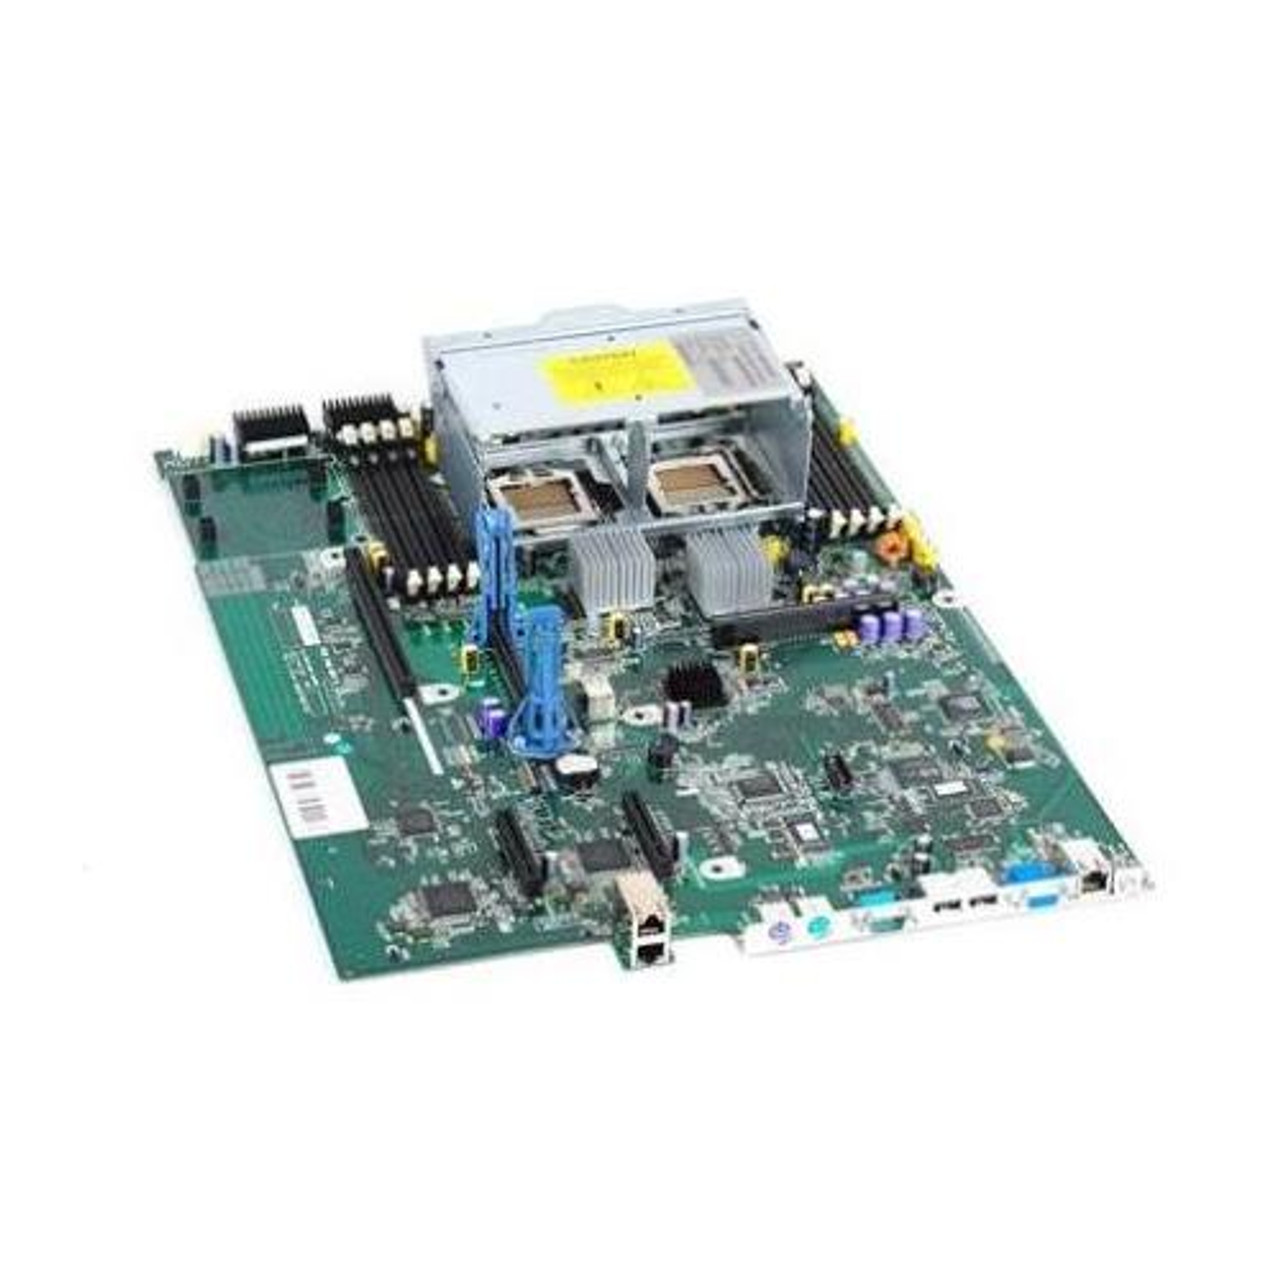 HP DL160 G5p System Board 495251-001 500387-001